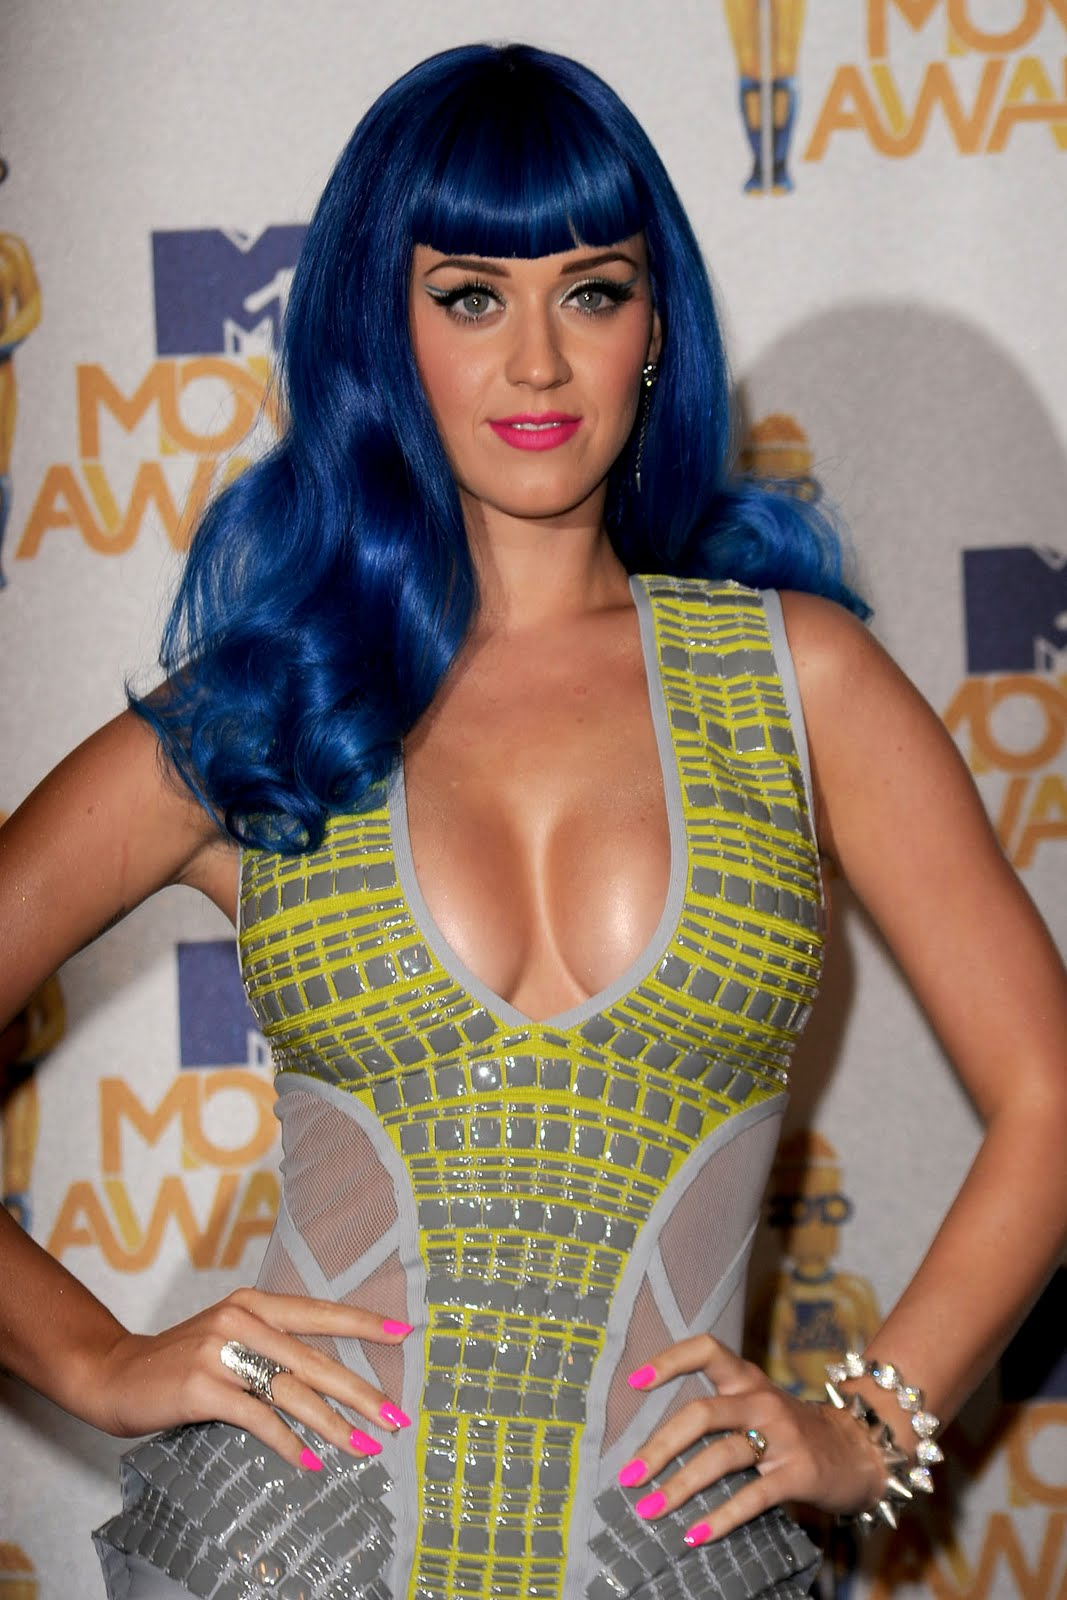 Katy perry tits and ass